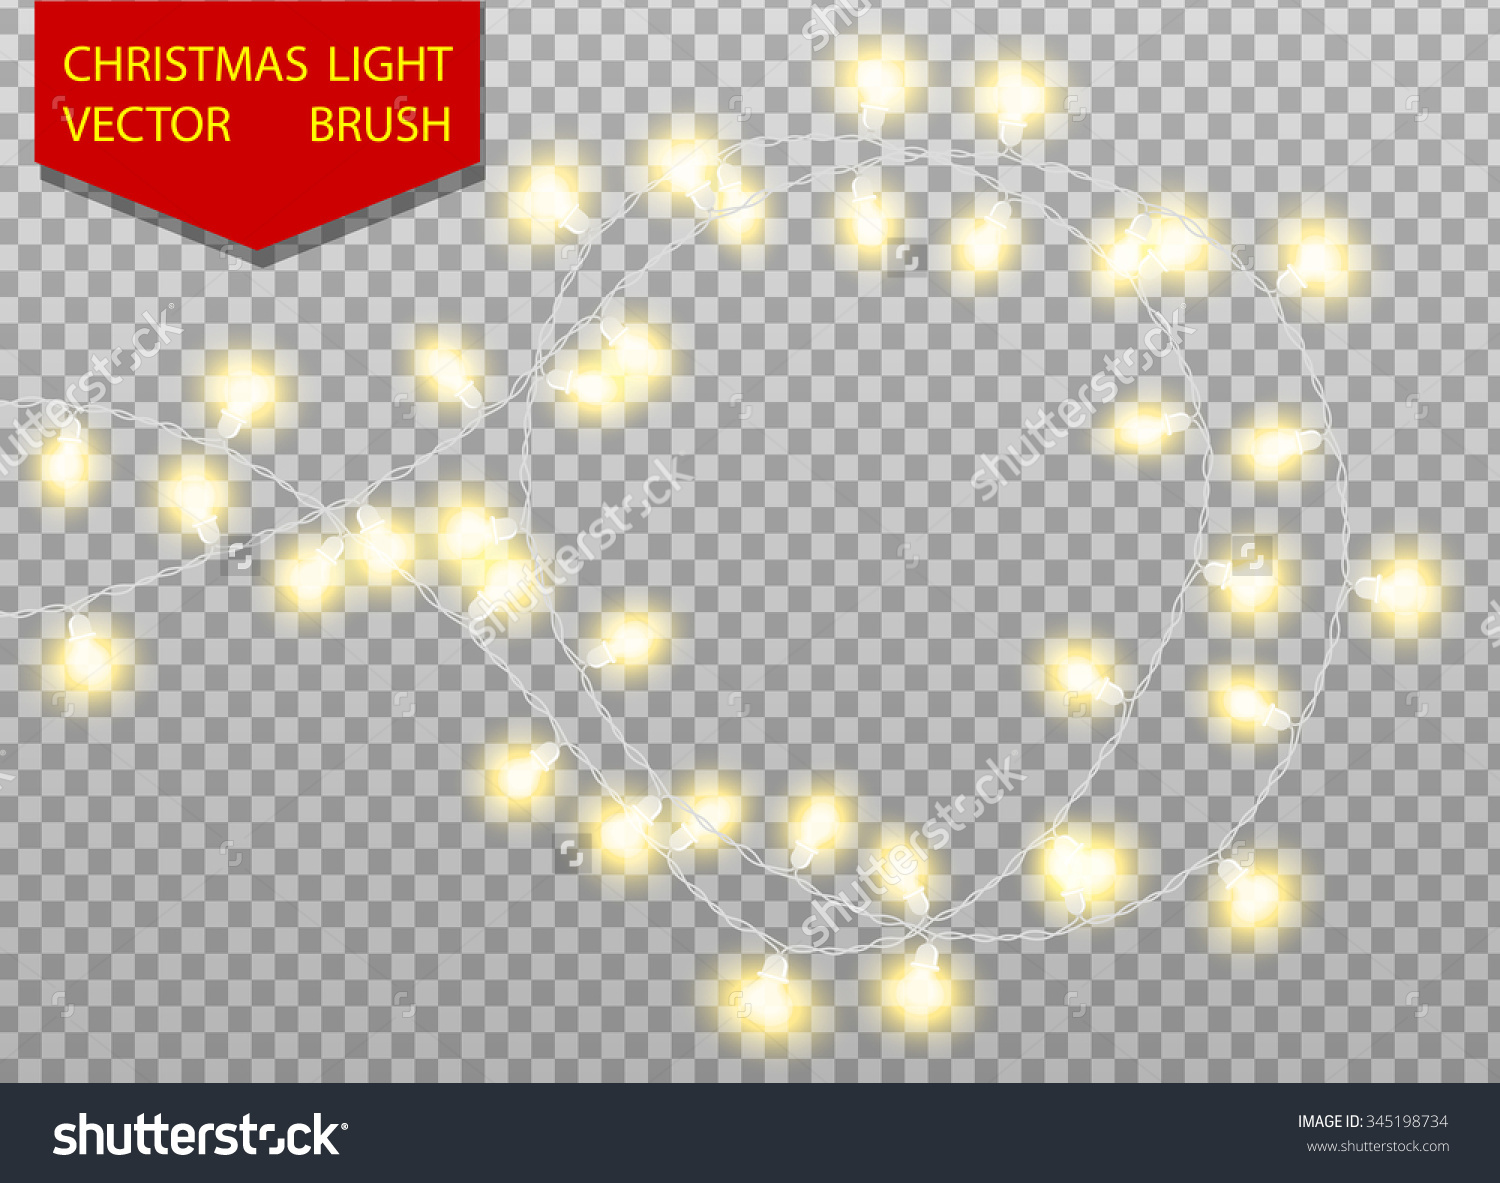 Clipart Christmas Lights No Background Clipground